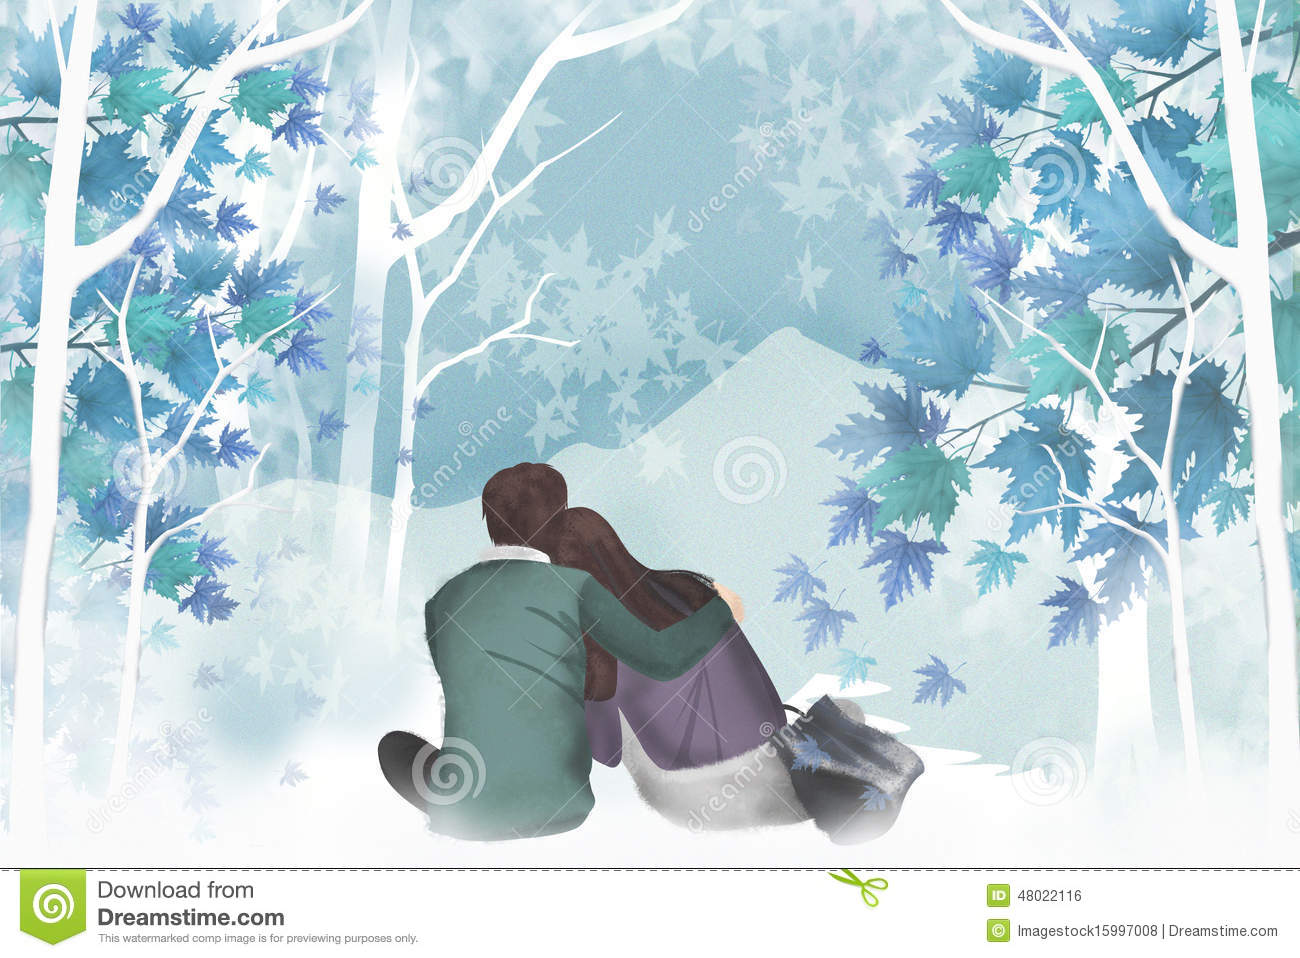 Wallpaper Cute Girl Free Download Appearance Of The Couple Rests On The Shoulders Of A Man